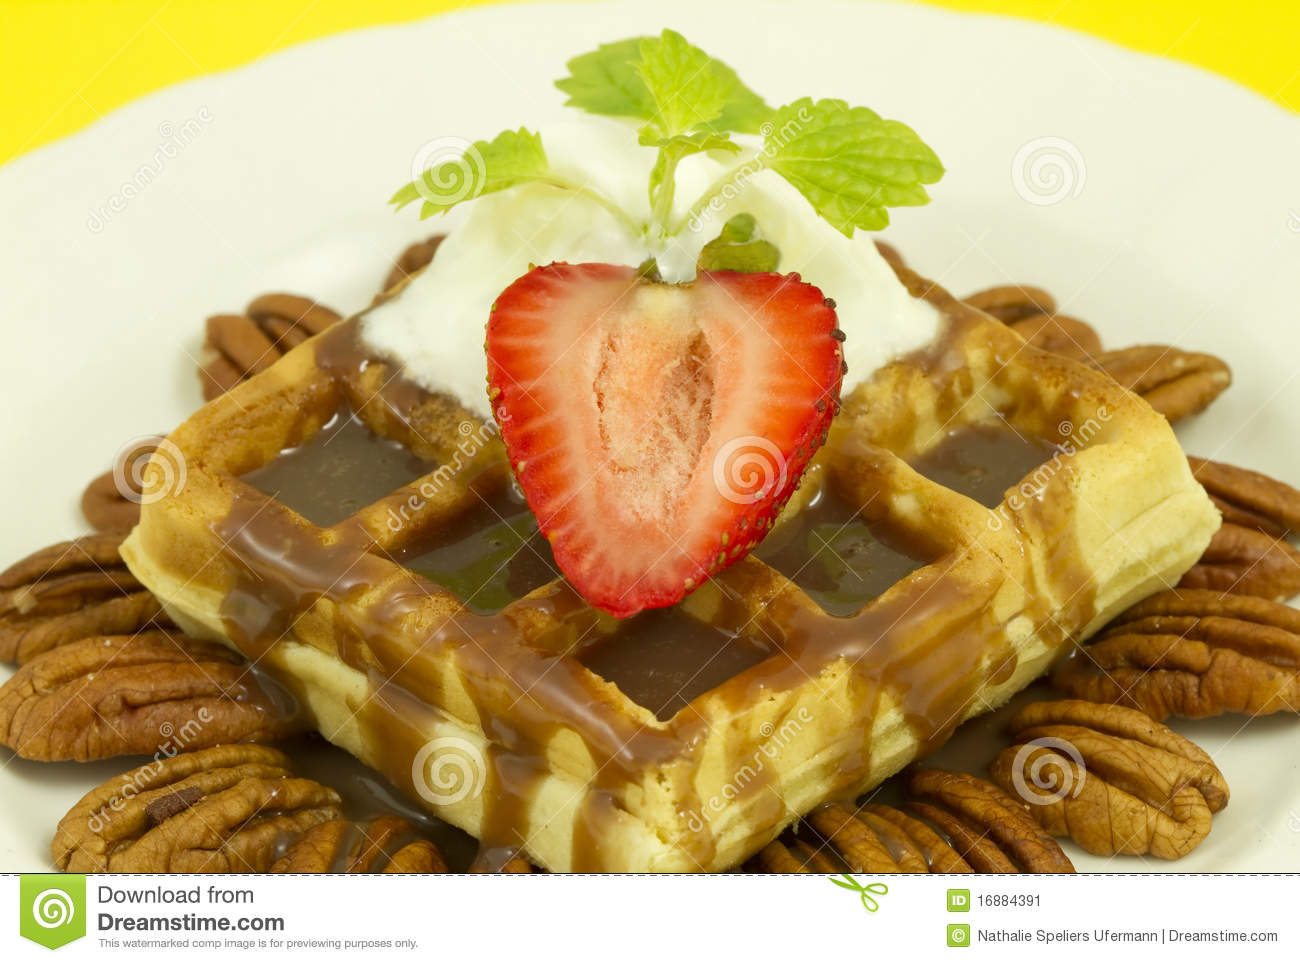 Nut Strawberry Waffle Front View Stock Image - Image: 16884391